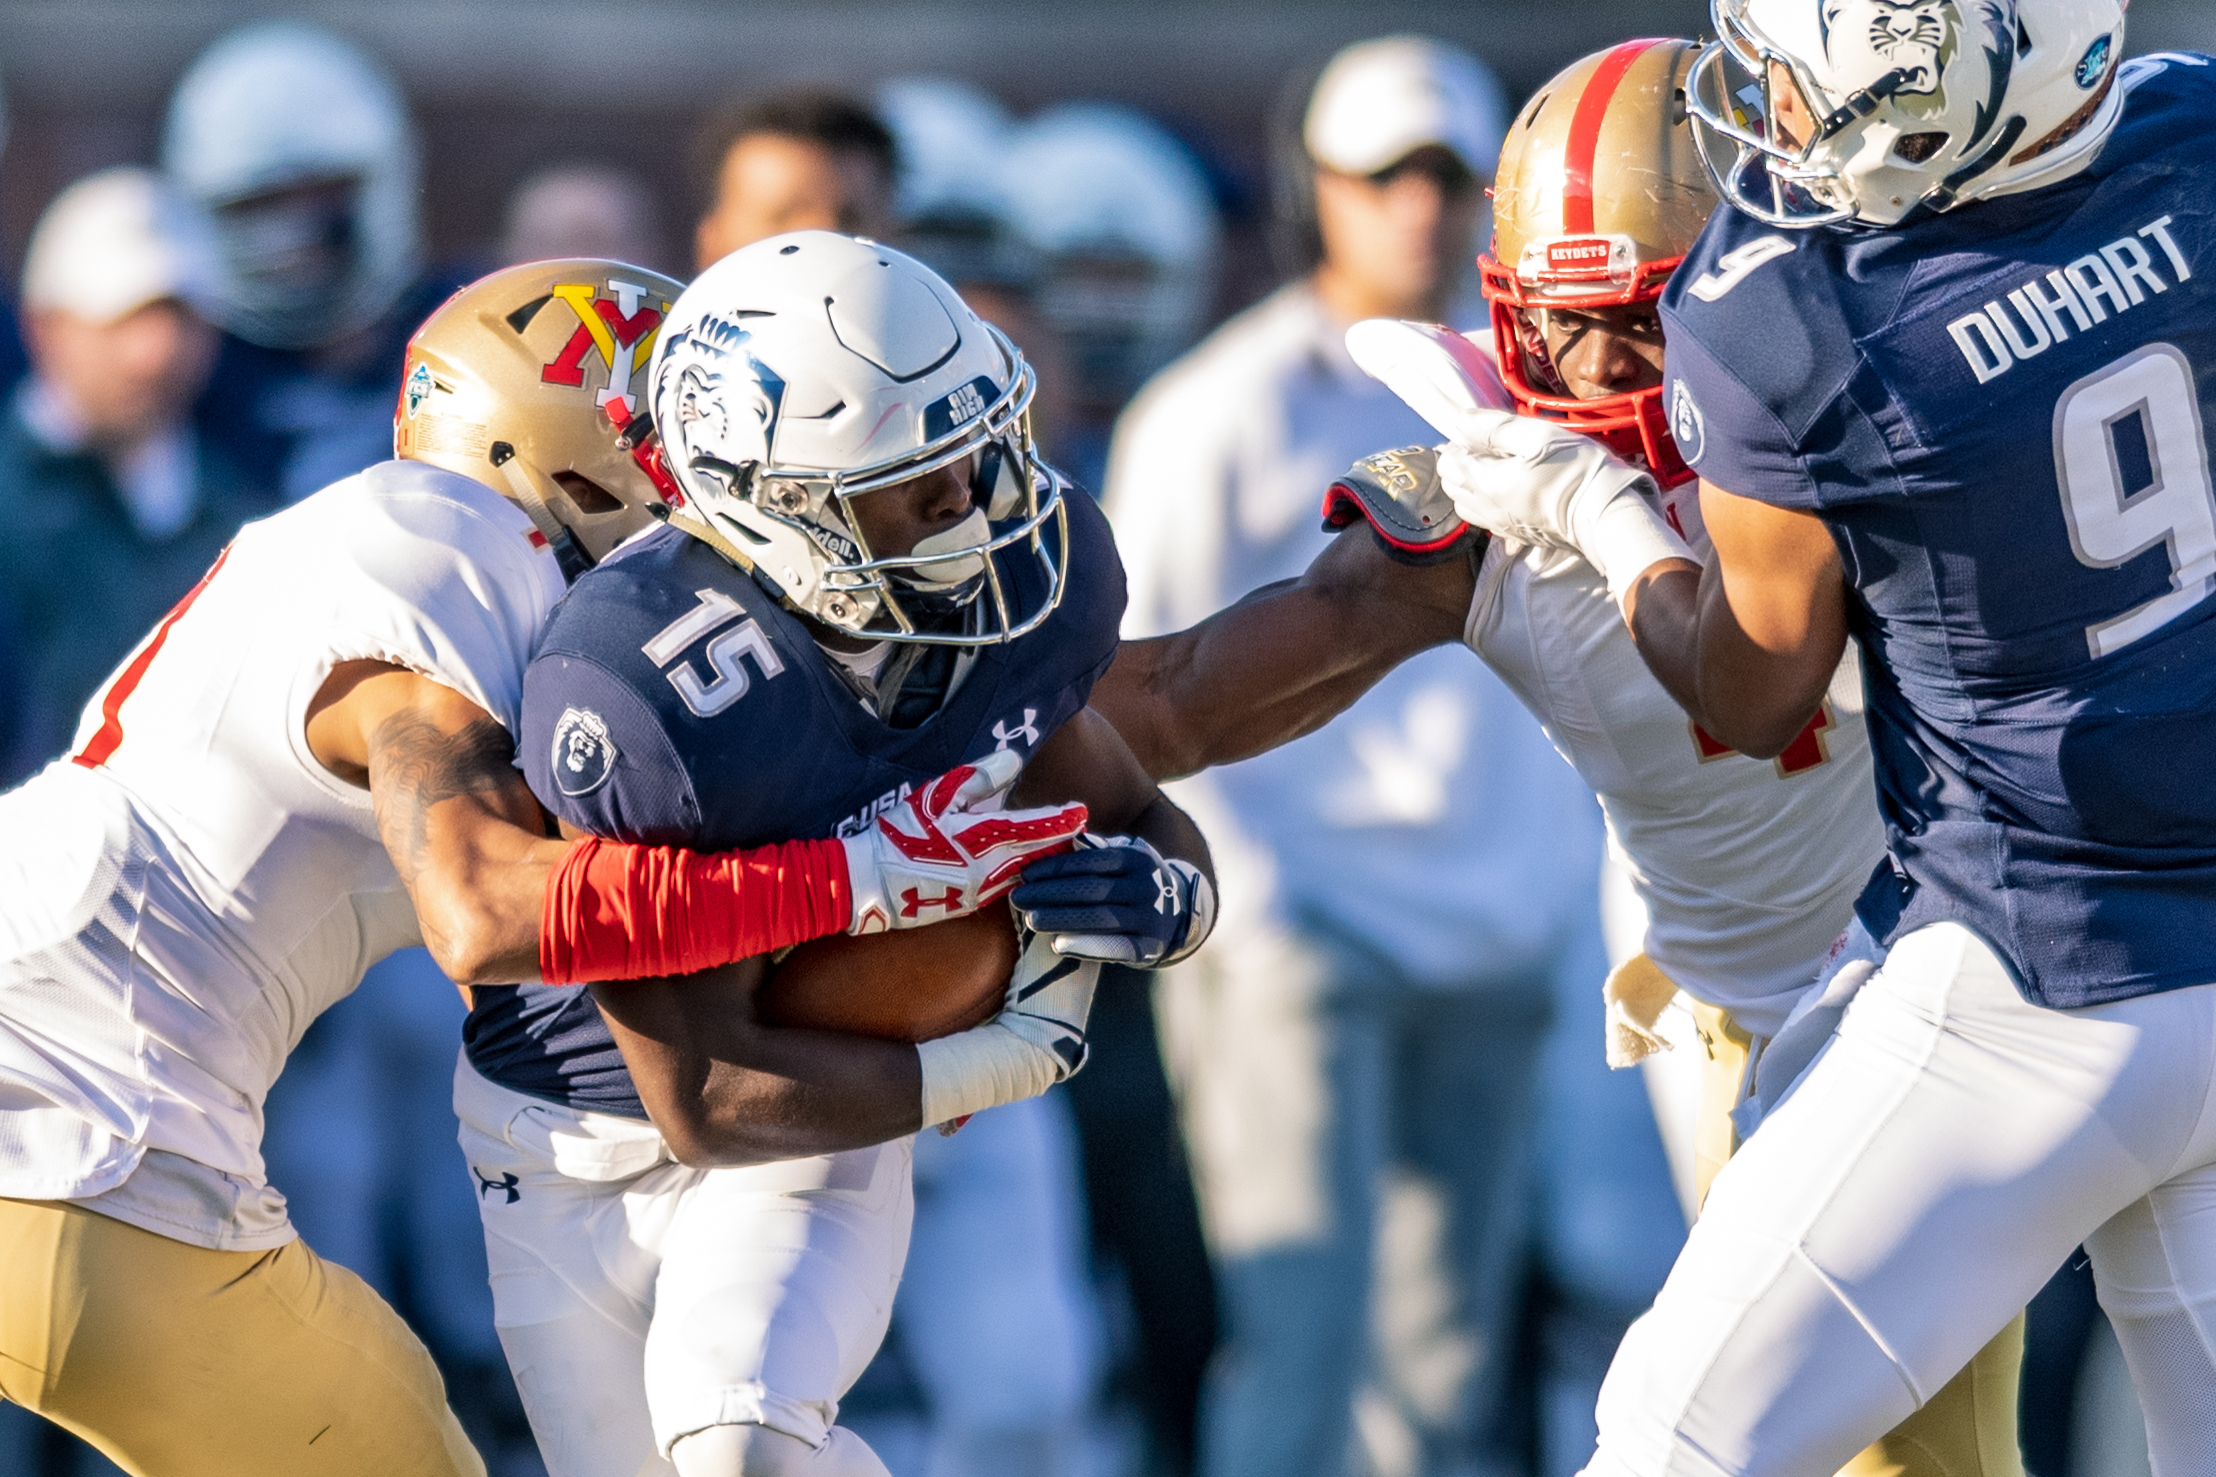 Virginia Military Institute Keydets defensive back Kaleb Tucker (1) works to tackle Old Dominion Monarchs wide receiver Isaiah Harper (15) during the Saturday, Nov. 17, 2018 game held at Old Dominion University in Norfolk, Virginia. Old Dominion leads VMI 49 to 0 at halftime.